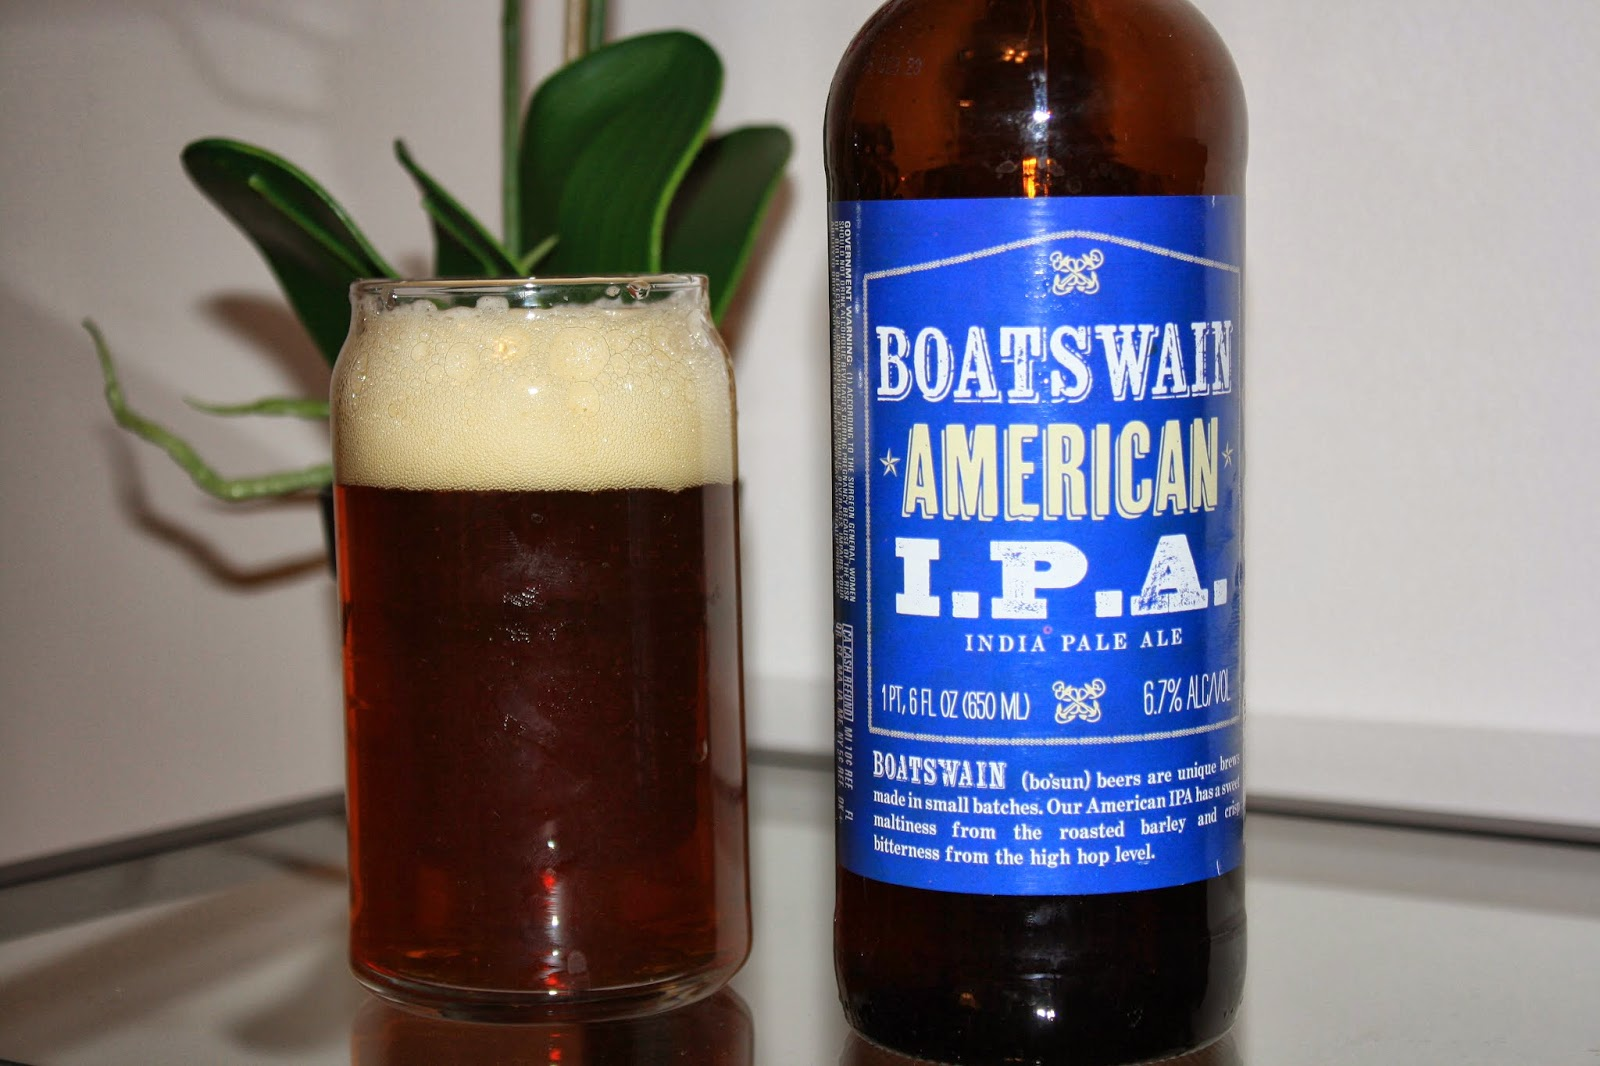 Trader Joe's, Boatswain IPA, India Pale Ale